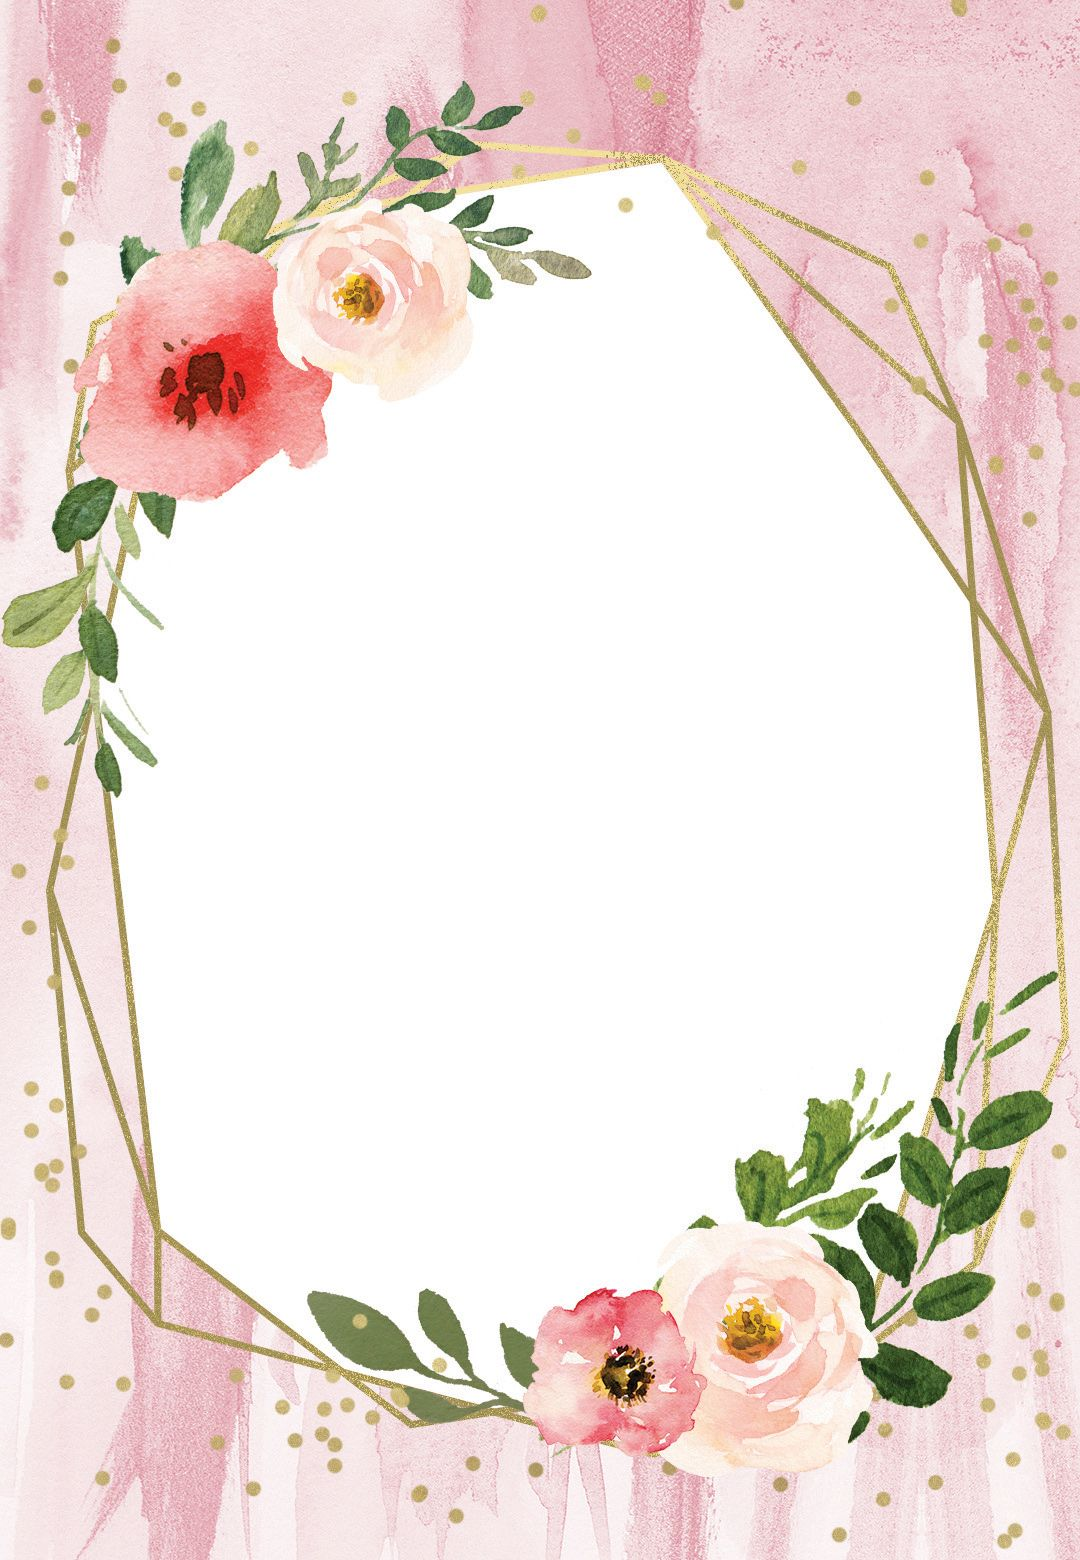 Polygonal Frame And Blush Flowers Quinceanera Invitation Template Greetings Island Floral Border Design Flower Frame Floral Invitations Template